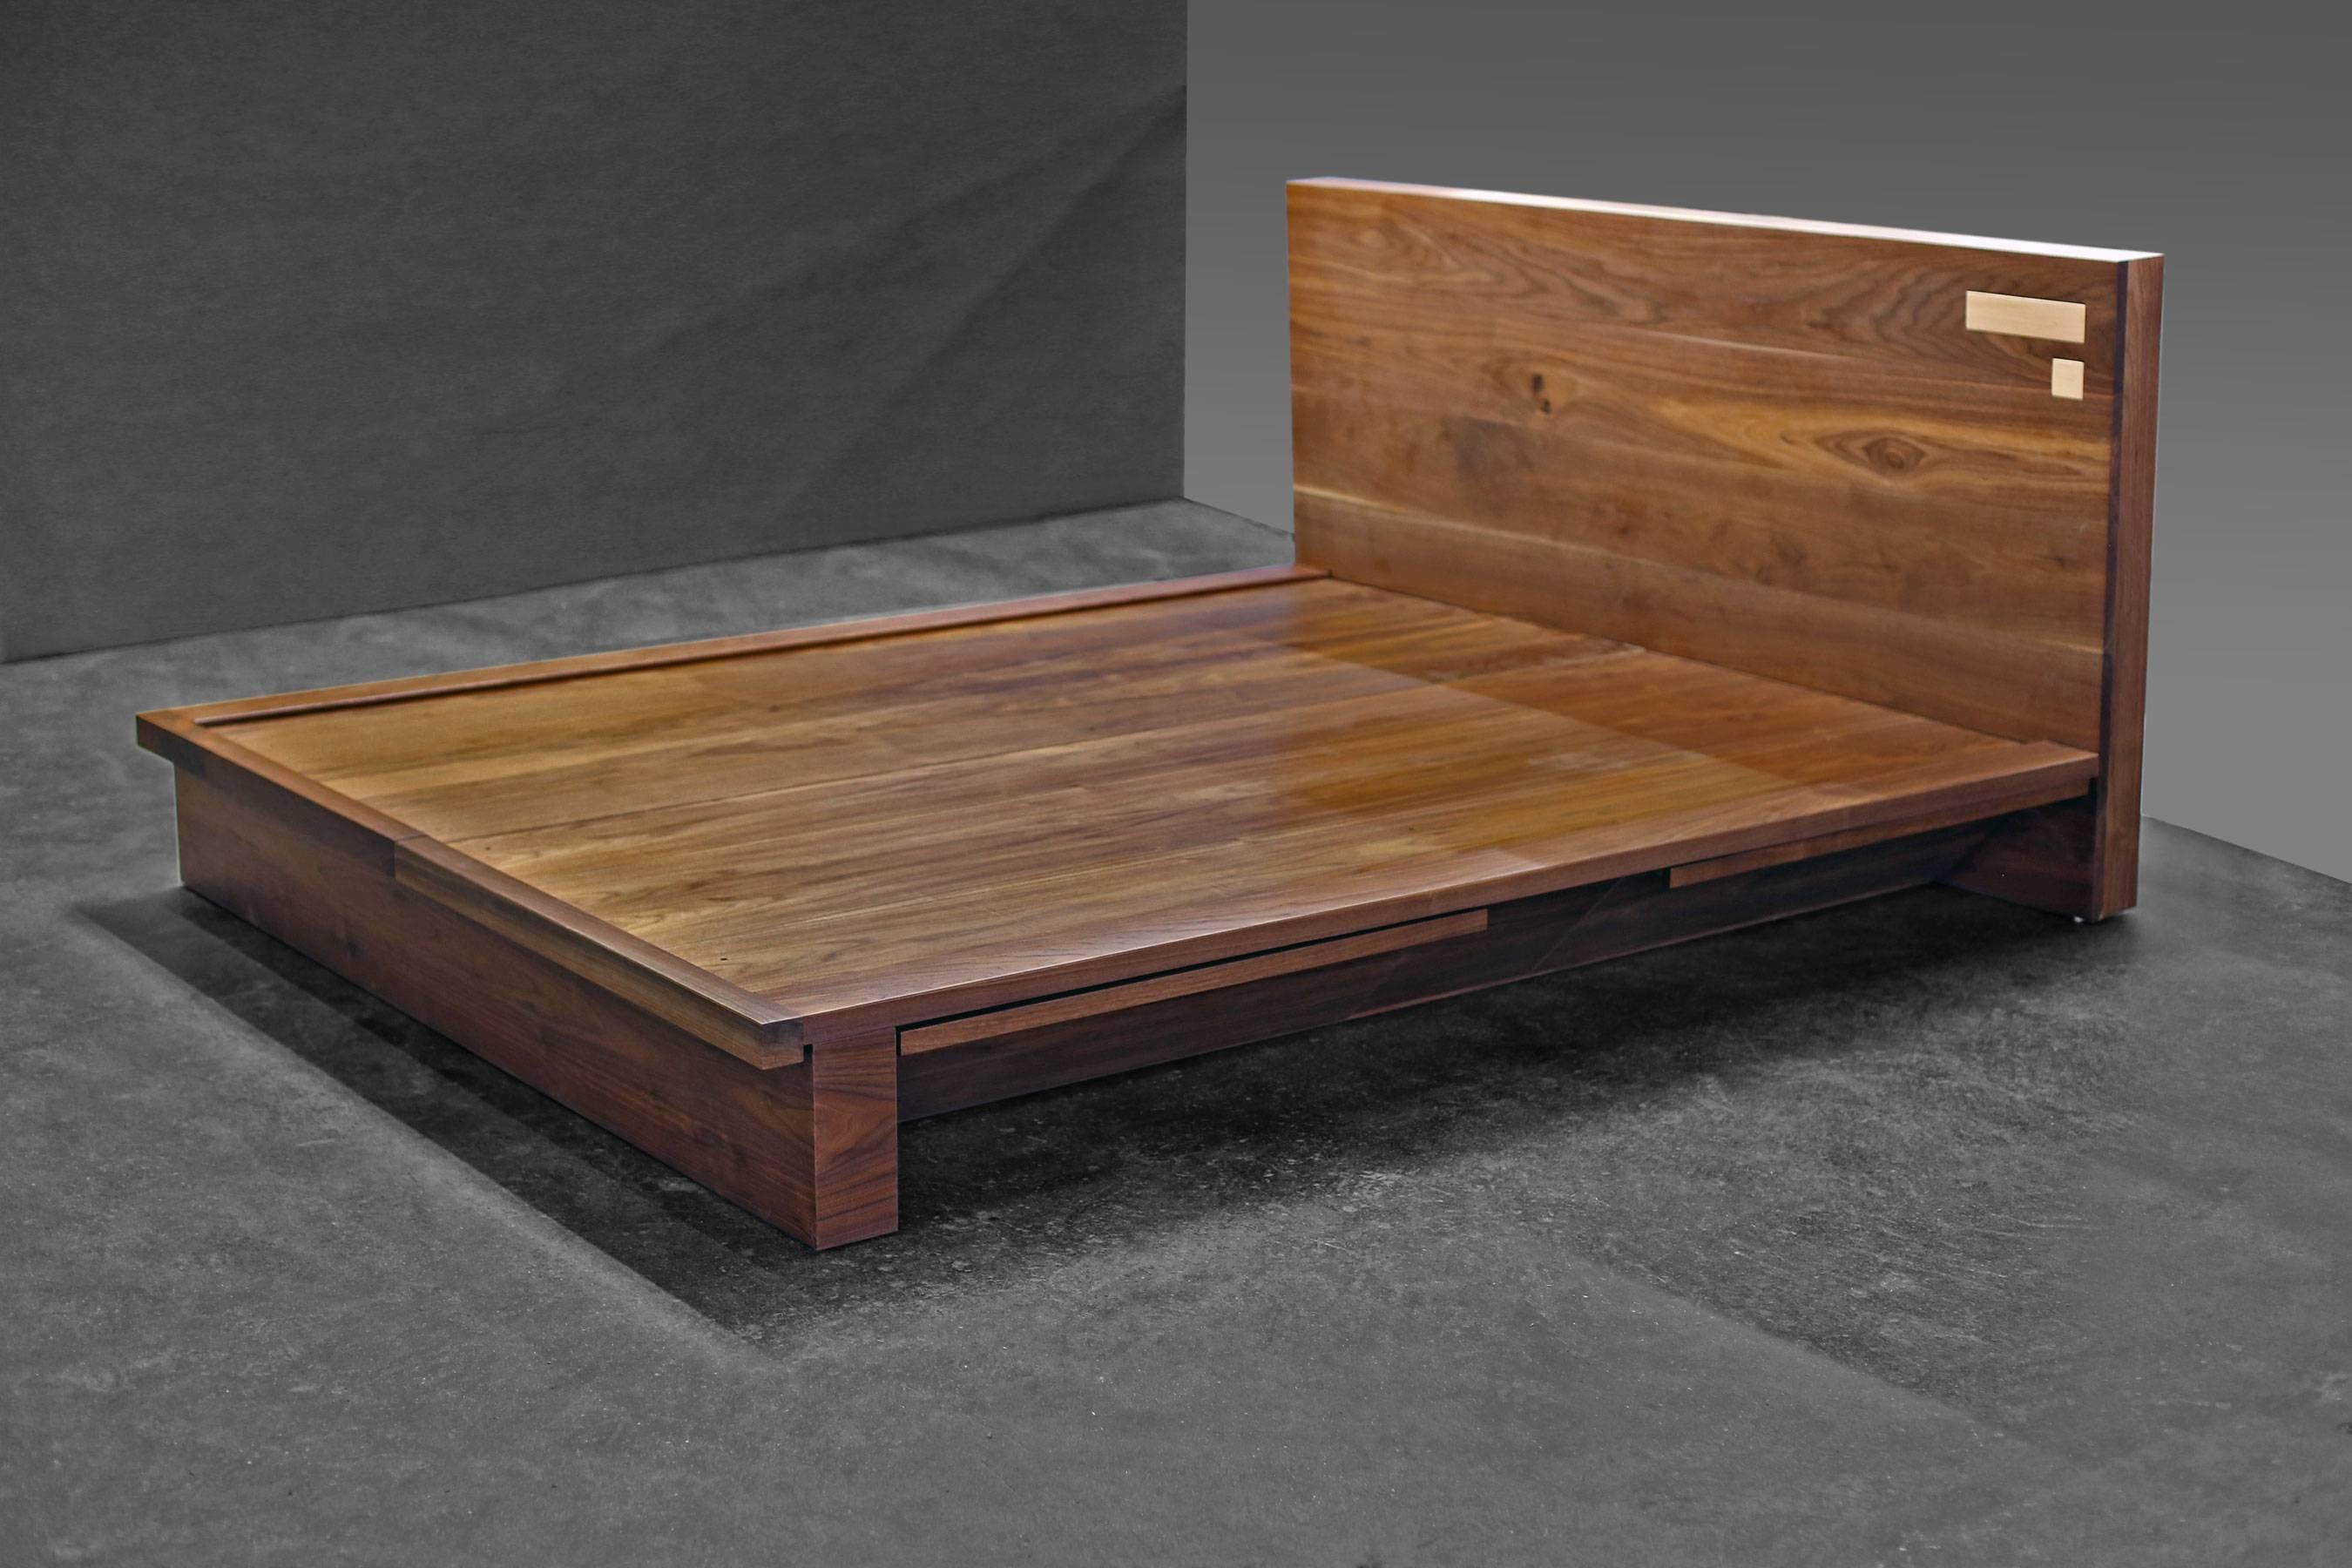 Shimna Liffey Platform Bed With Hidden Storage Drawers, King Size In New  Condition For